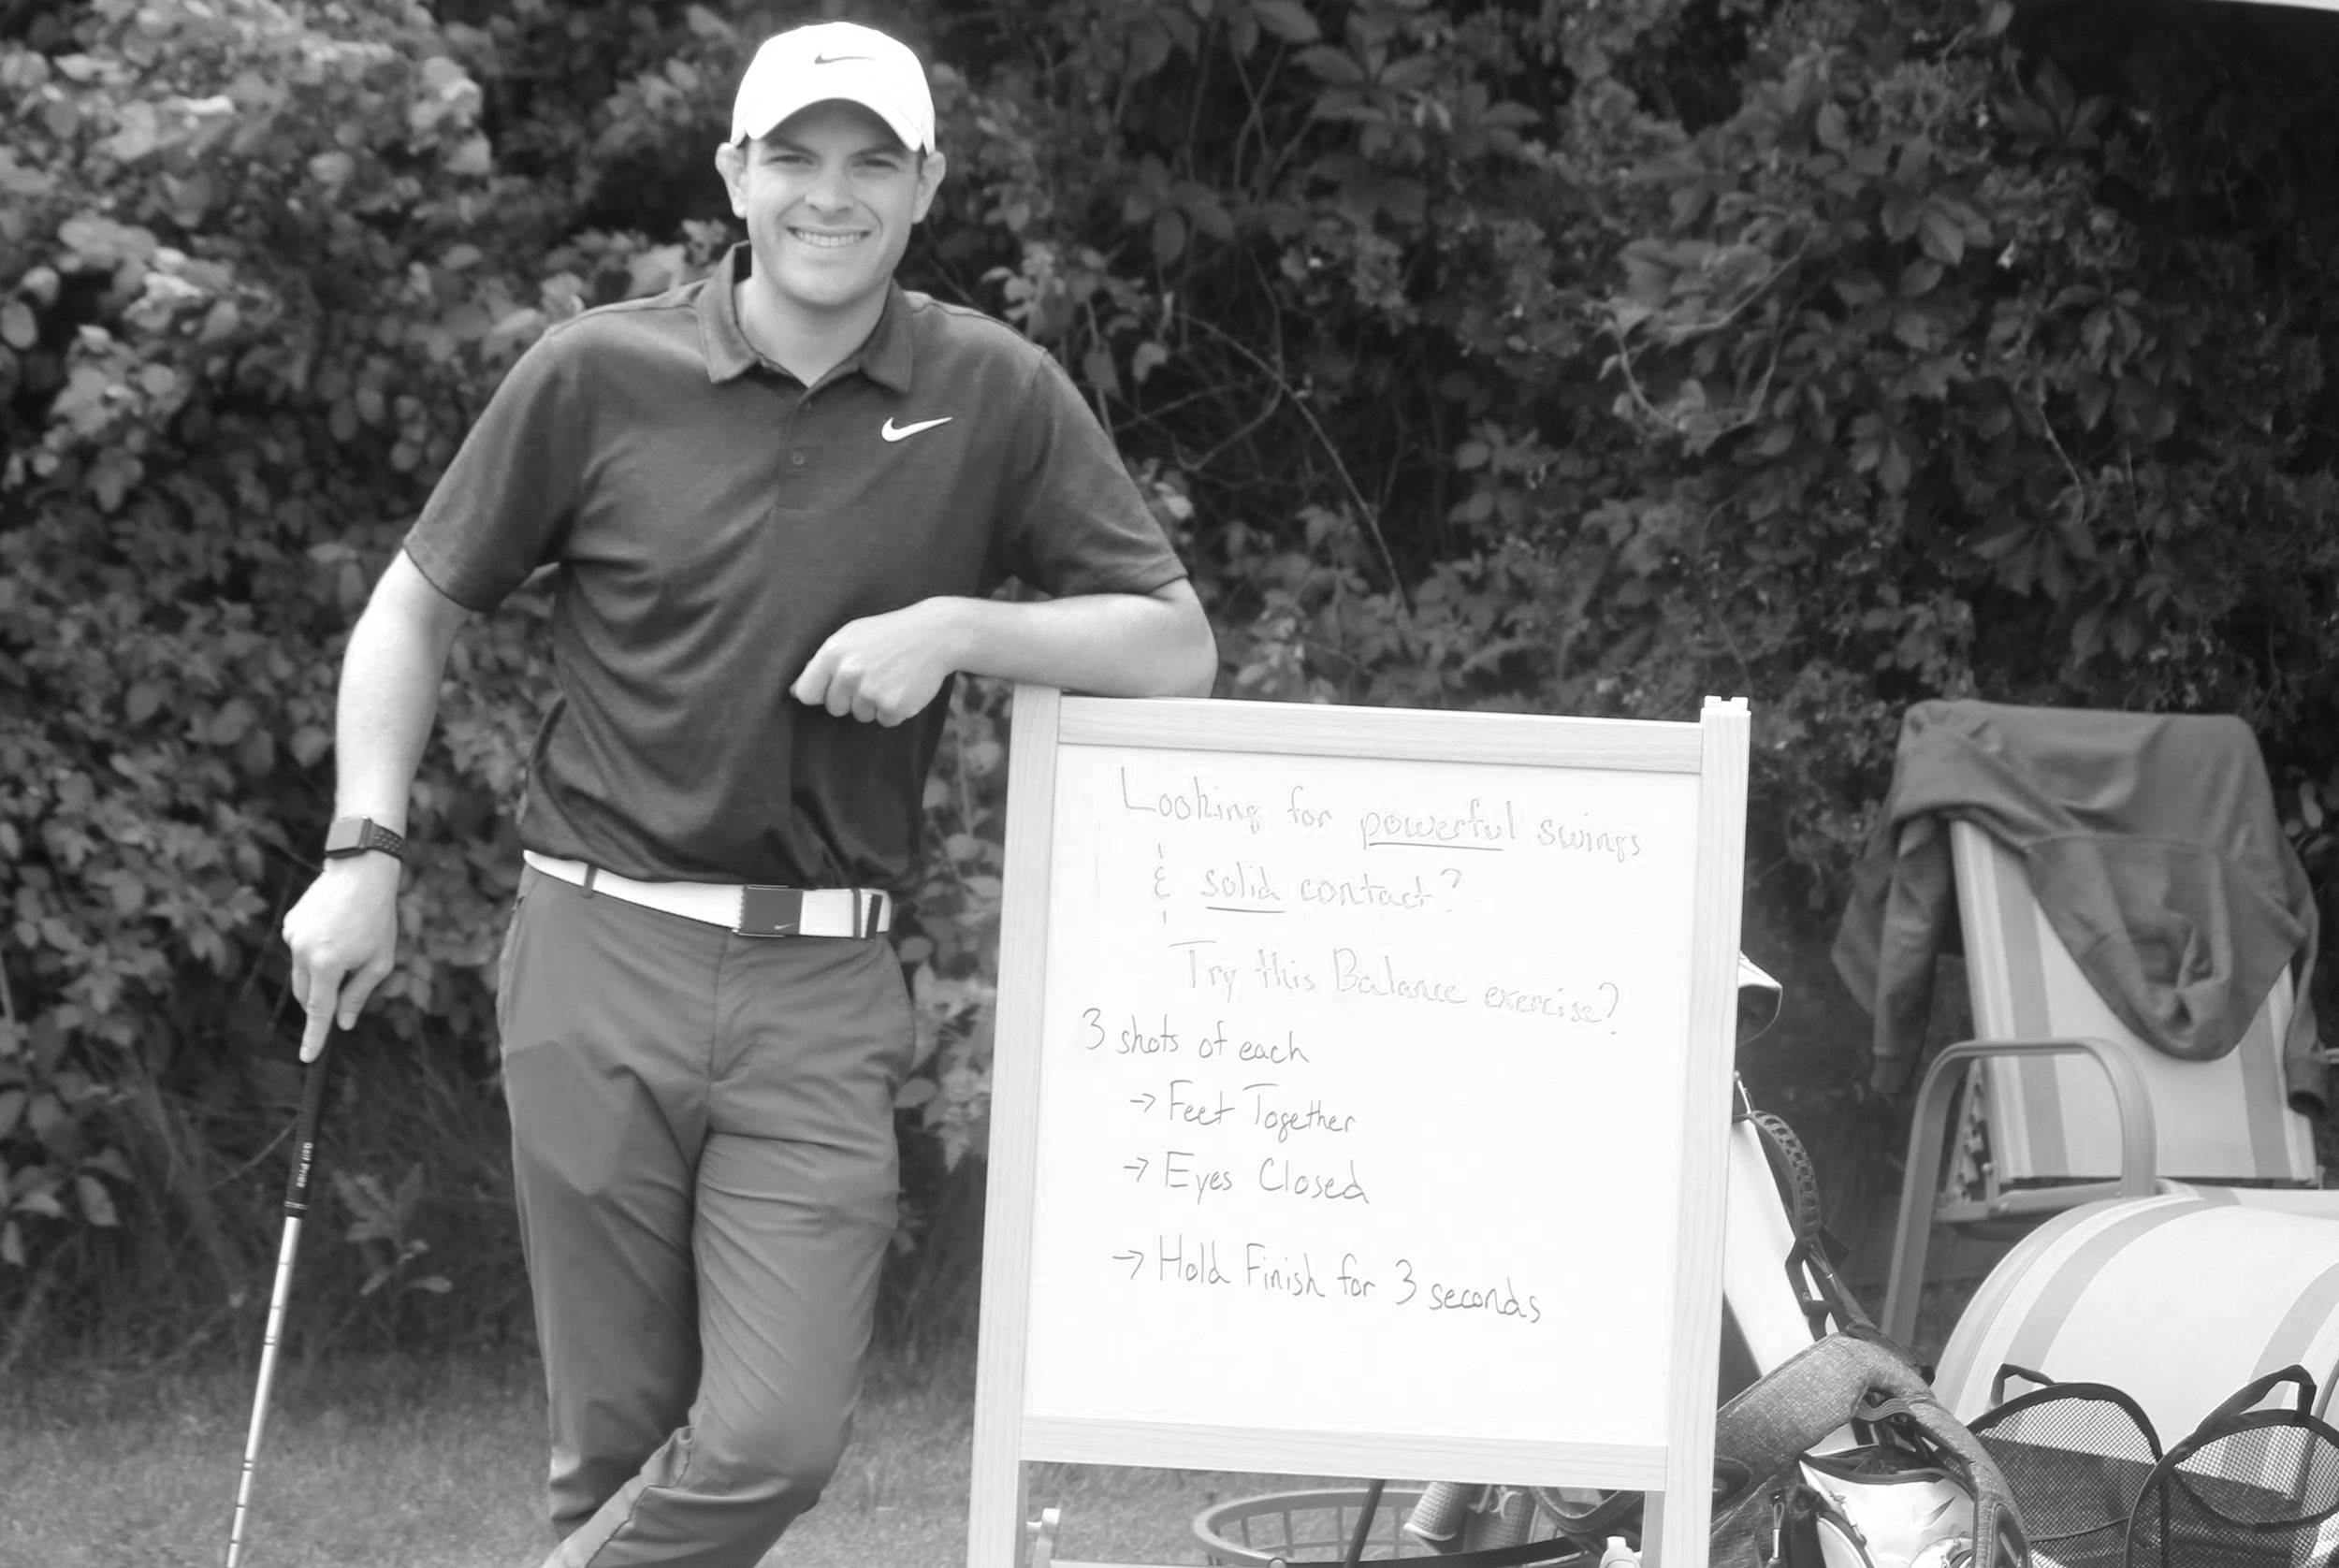 About Coach Zach - Zach Theut is a young and passionate golf coach that focuses on helping players shoot lower scores and enjoy their time out on the golf course.